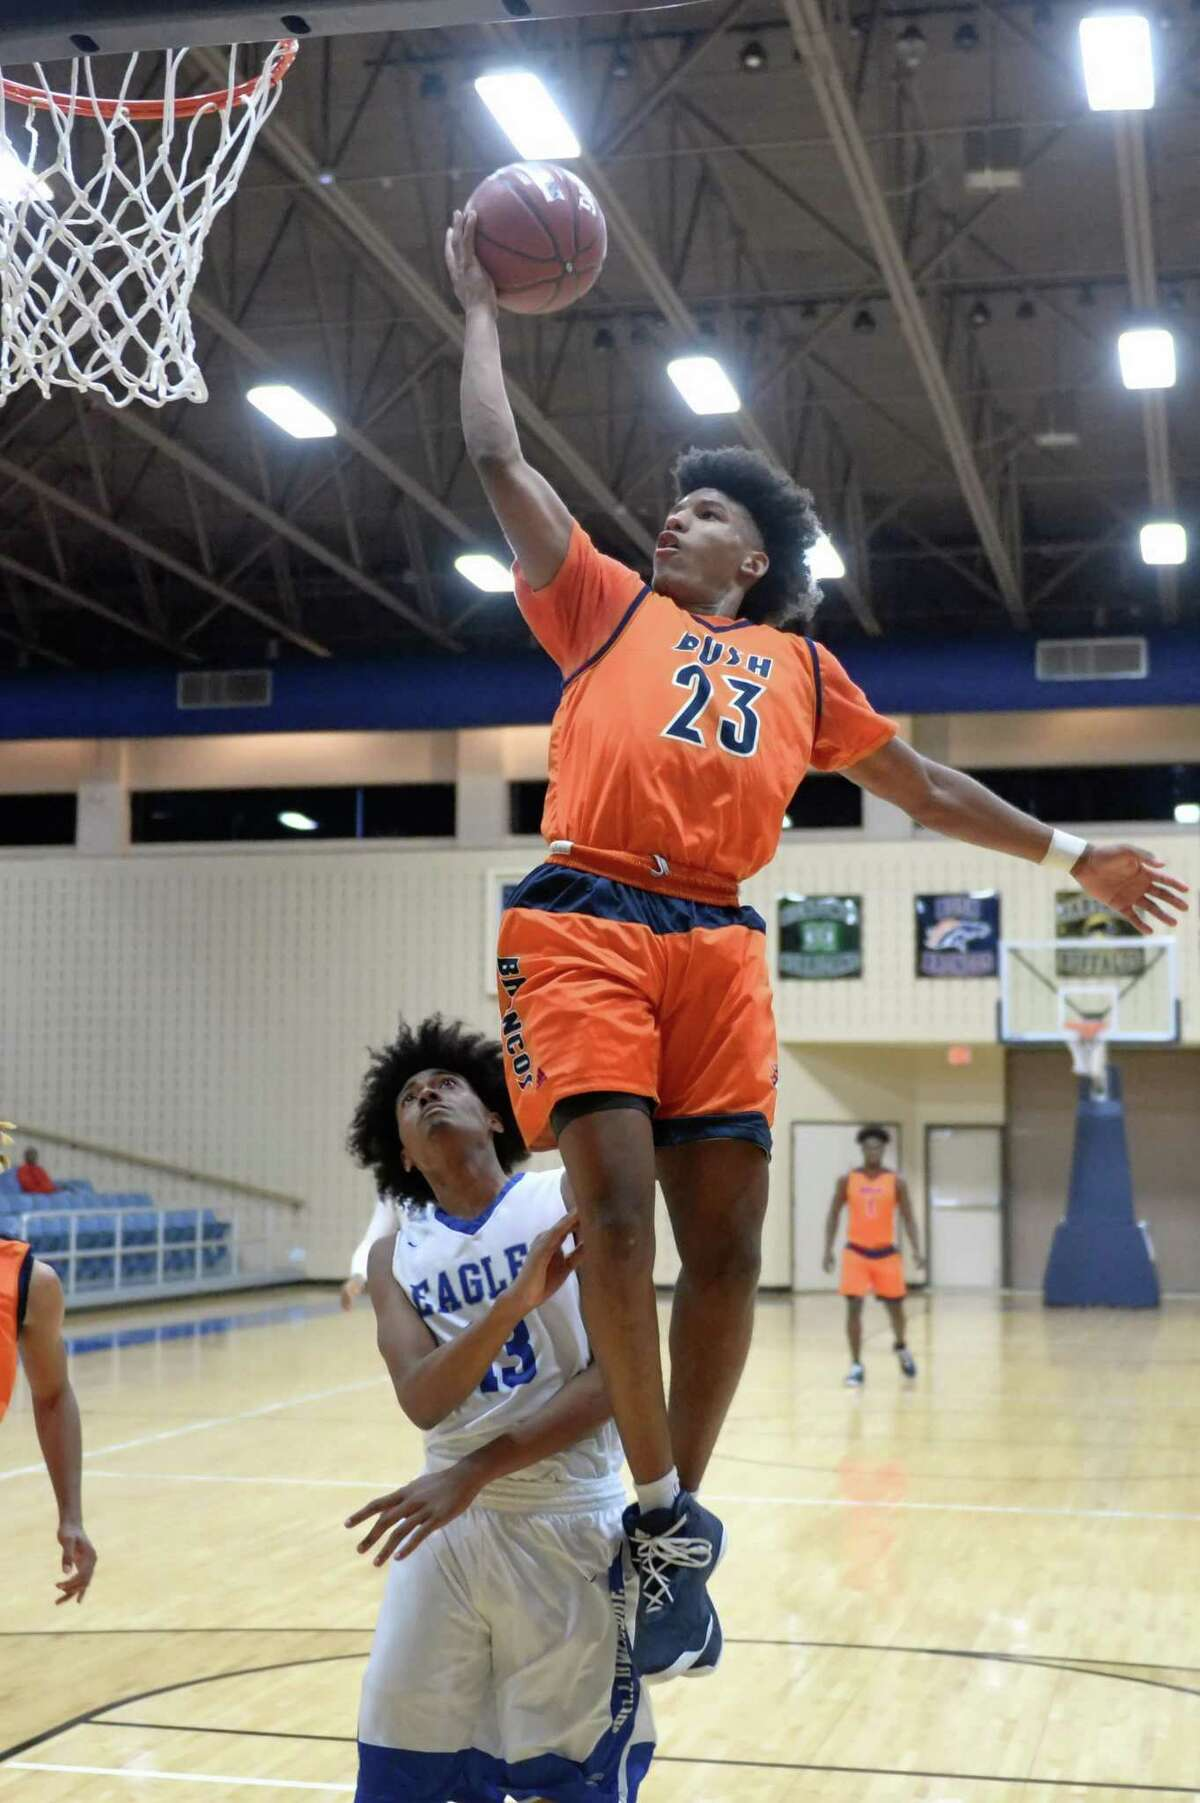 Peter Byrd (23) of Bush drives to the hoop during pool play in the Fort Bend ISD Balfour Basketball Tournament between the Bush Broncos and the Willowridge Eagles on Thursday December 7, 2017 at Wheeler Field House, Sugar Land, TX